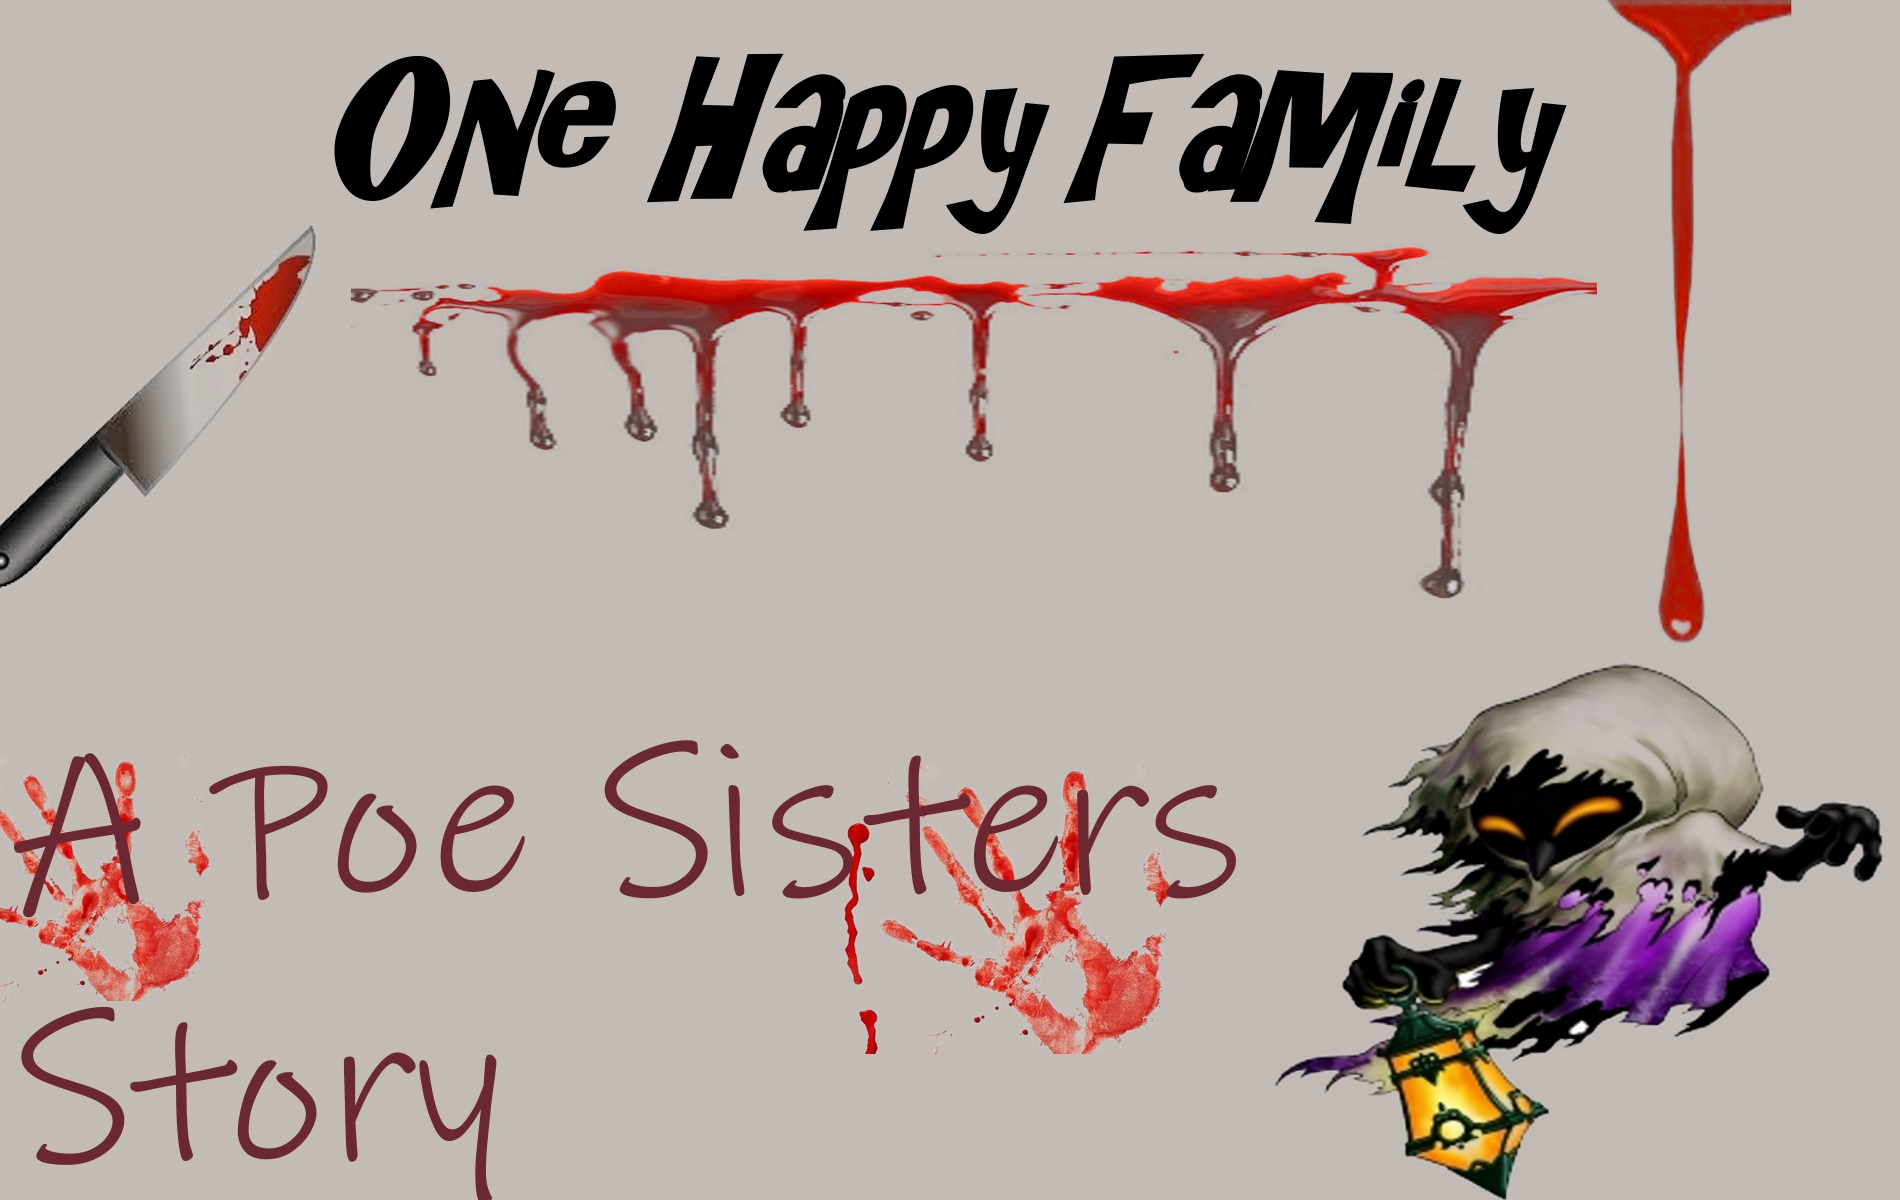 Fan Fiction Friday: Poe Sister - One Happy Family - Finale